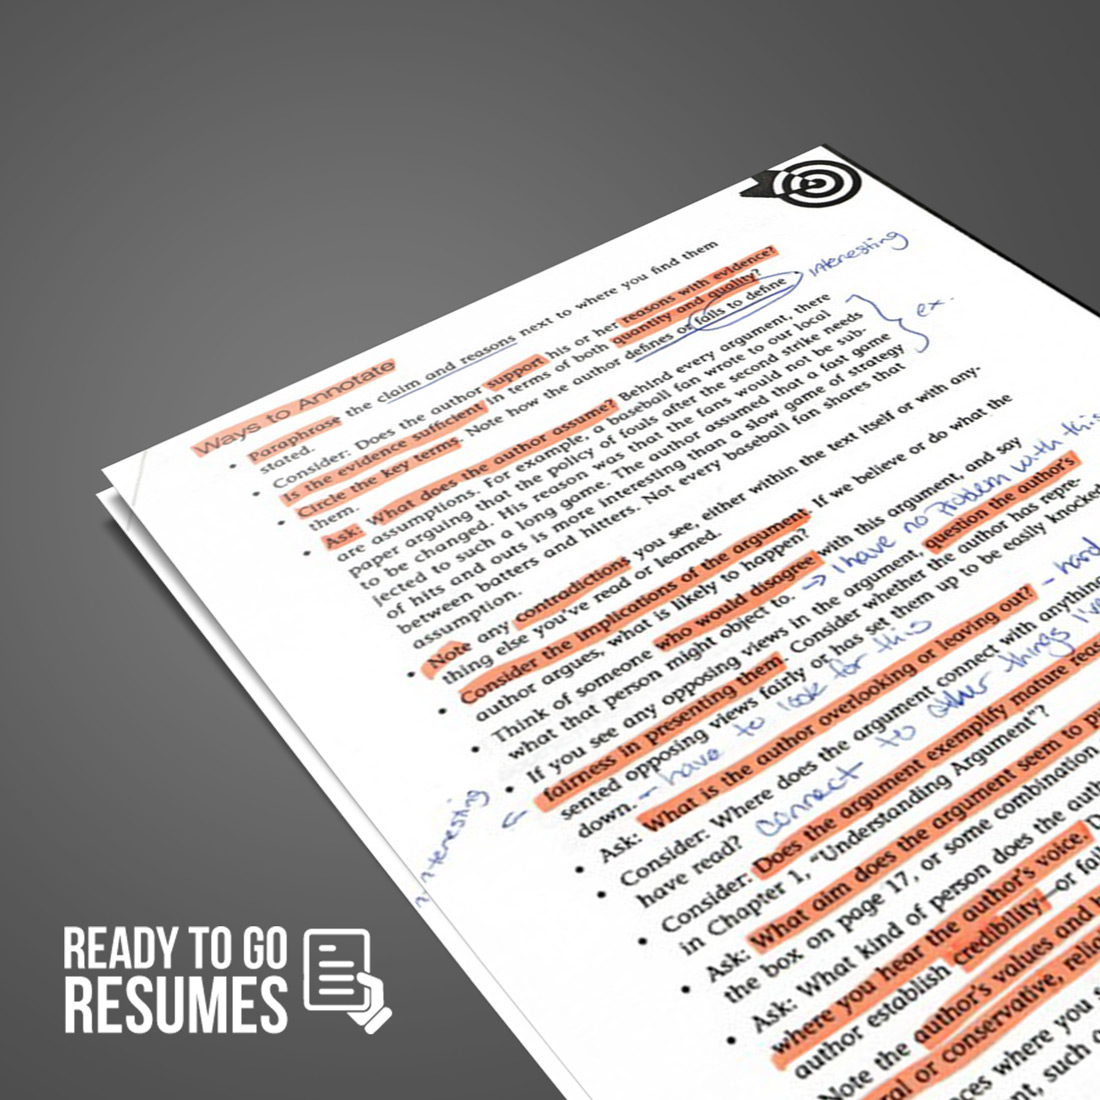 resume Resume Critique resume critique ready to go resumes free resumes